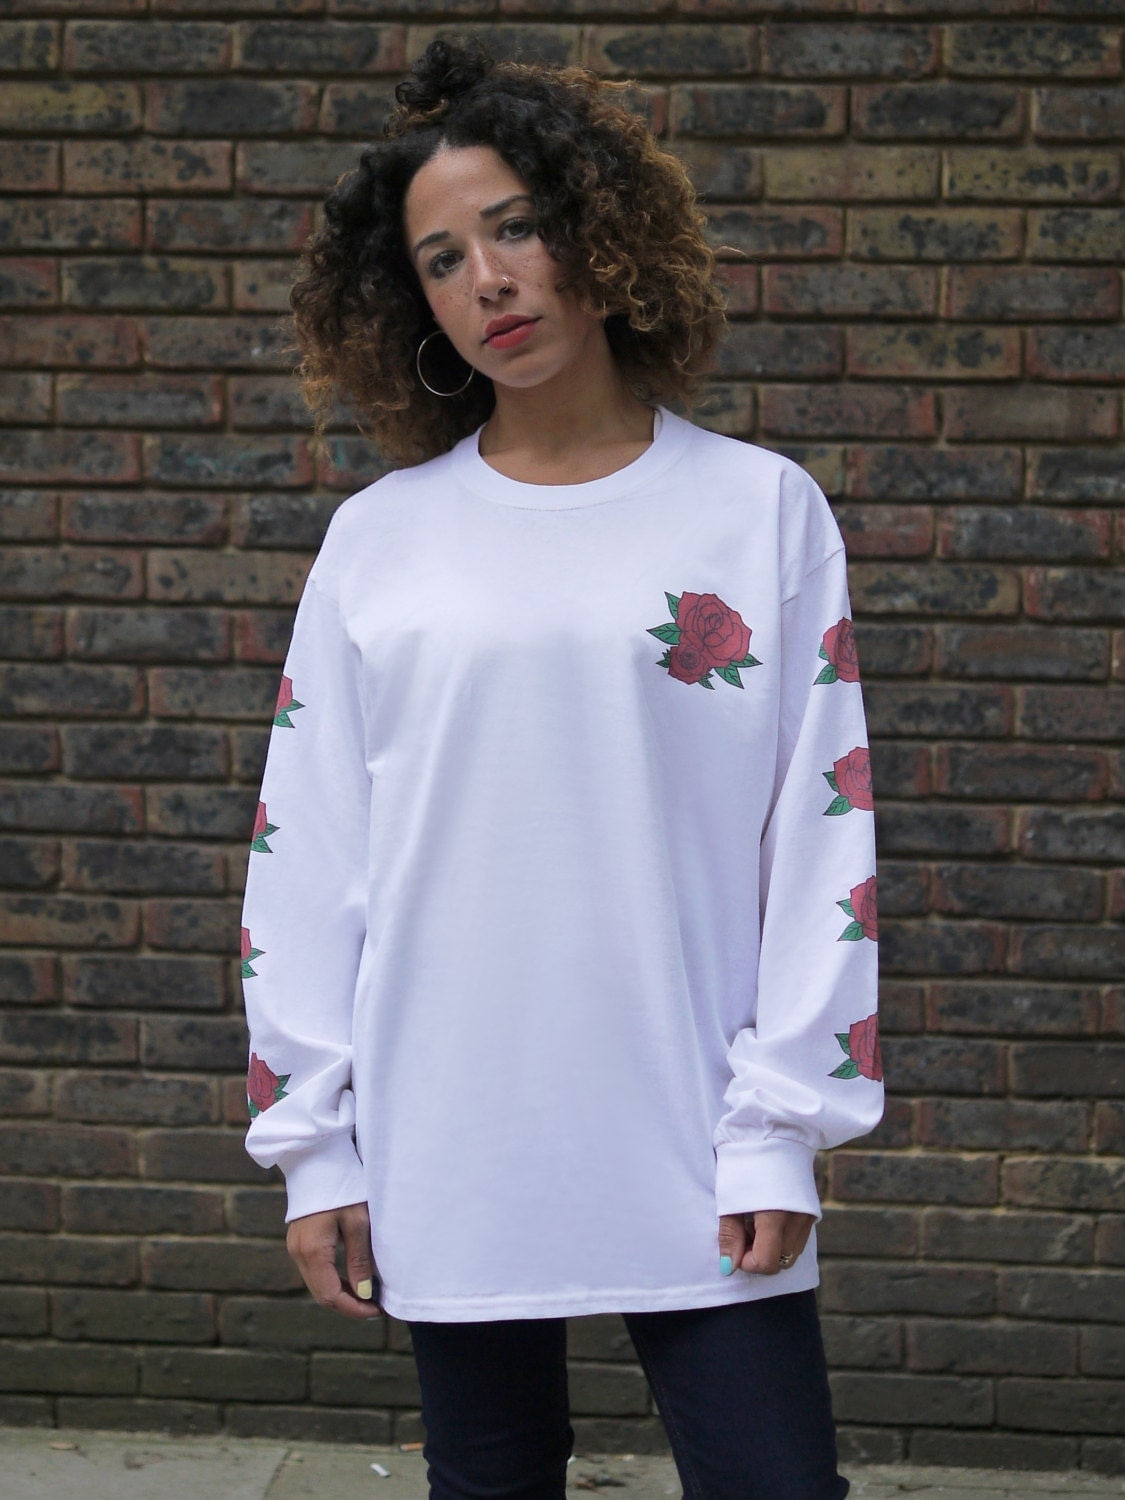 White Baggy Long Sleeved T-shirt Colourful Graphic with Rose